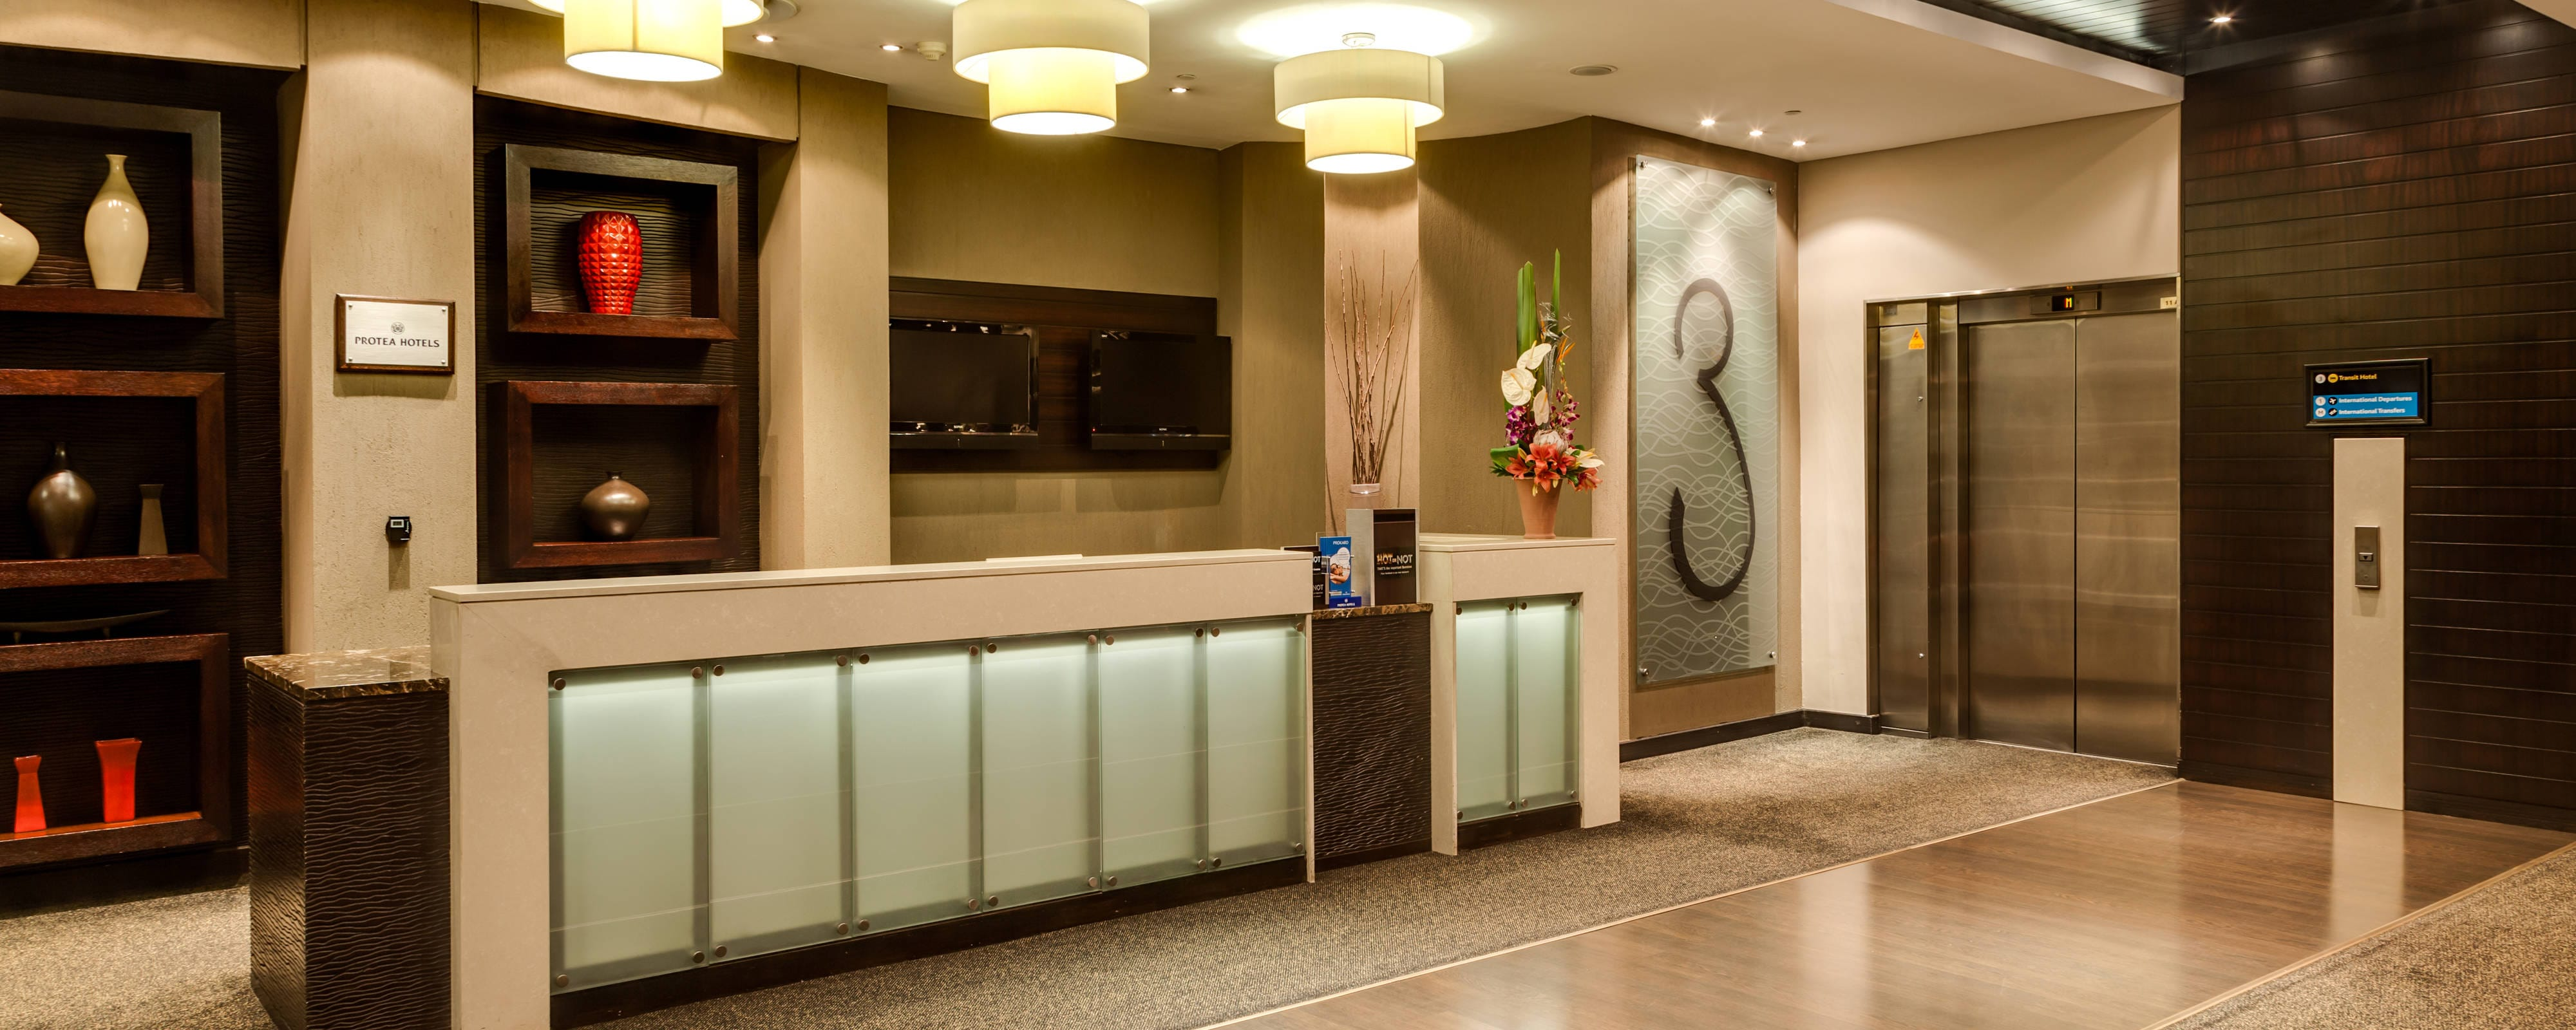 Protea Hotel Transit Reception Area